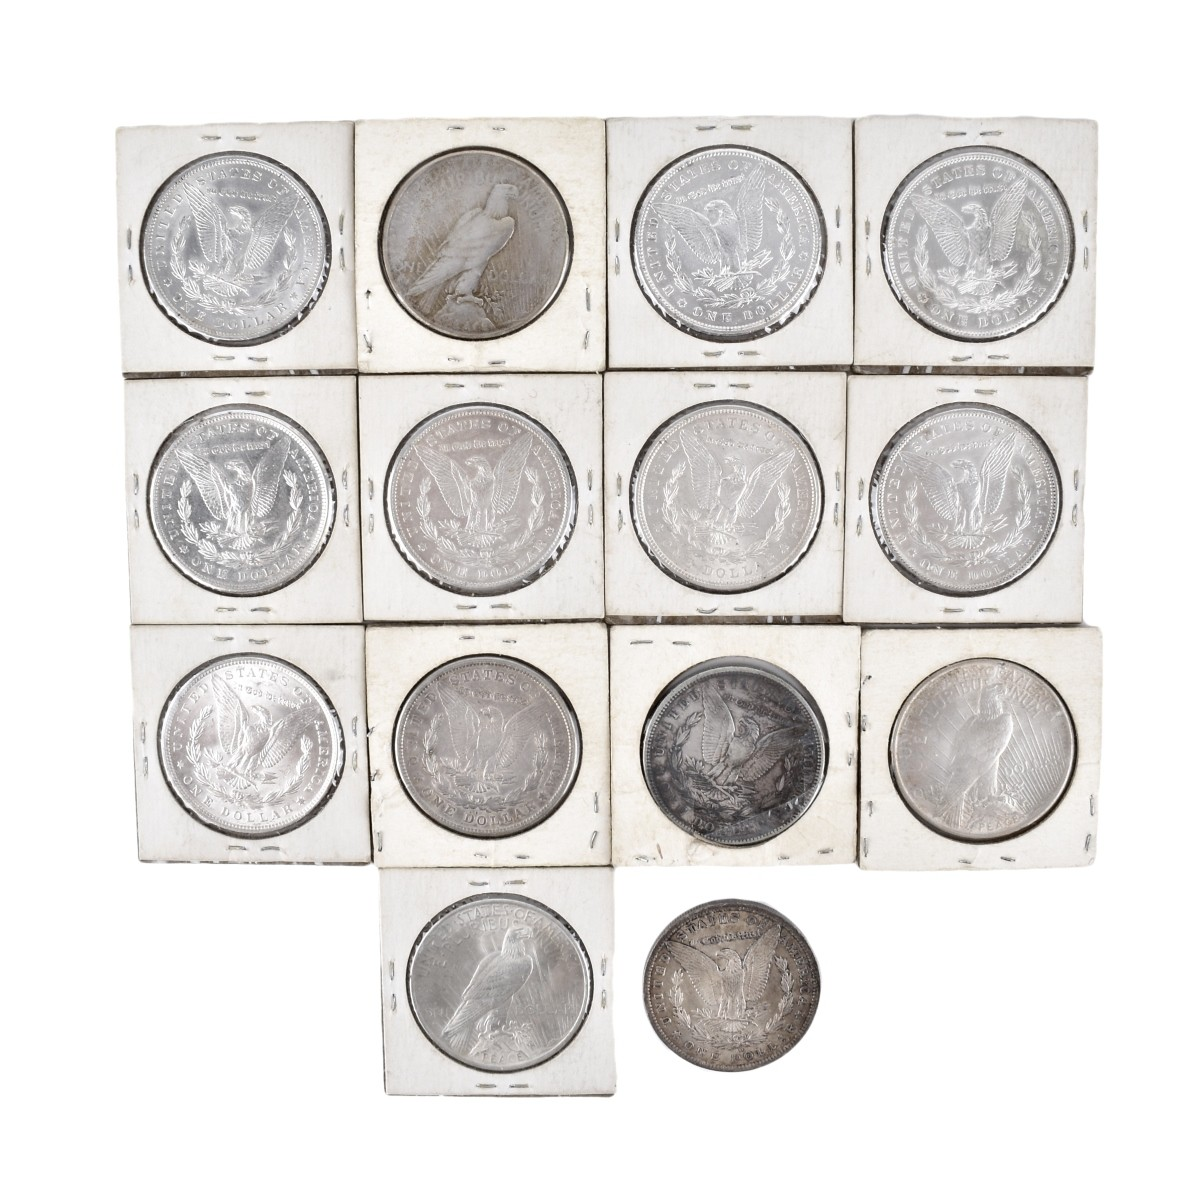 14 US Morgan Silver Dollar Coins